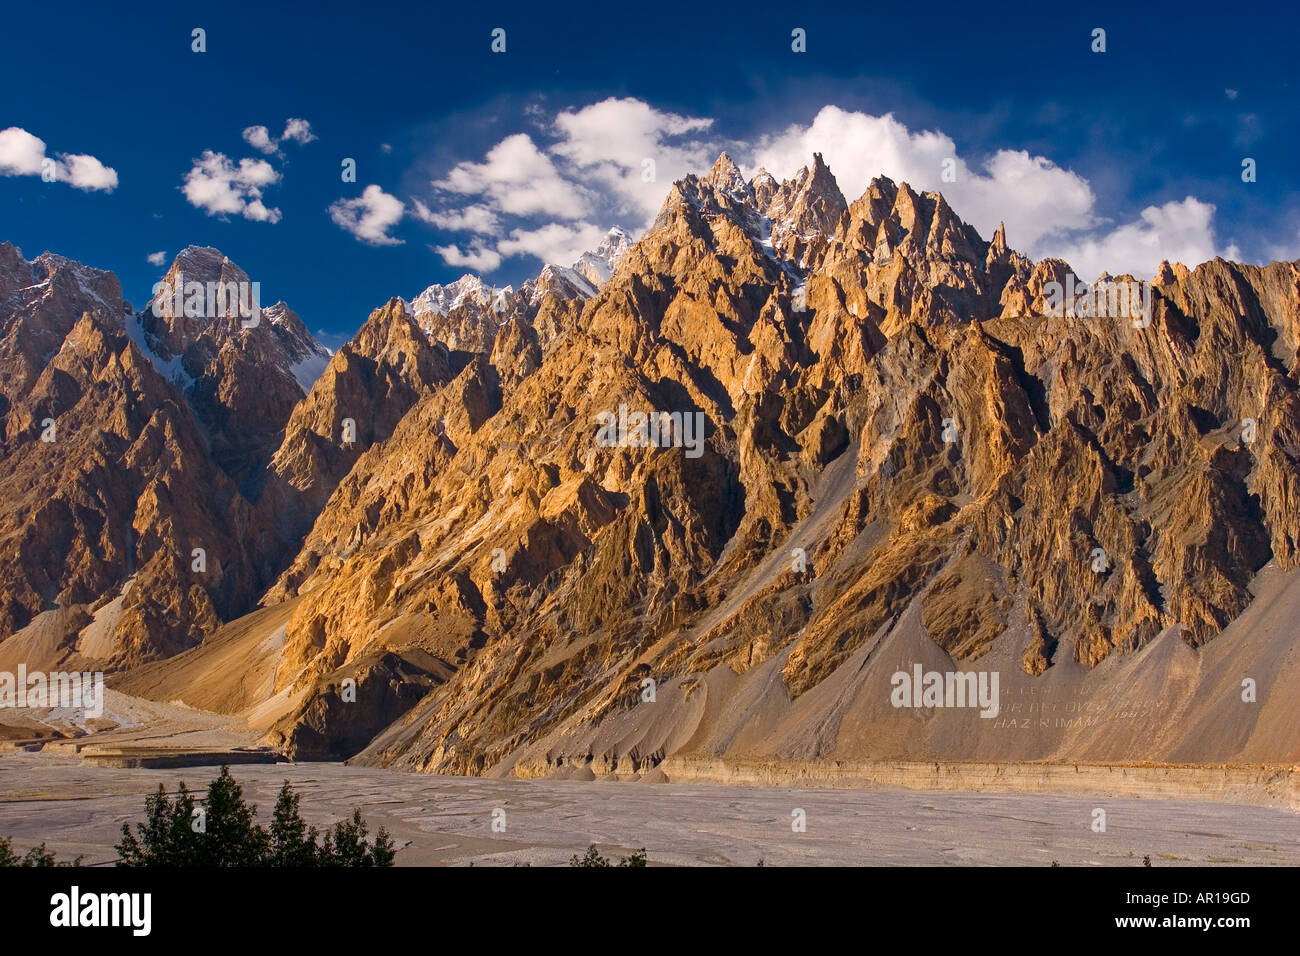 The stunning rocky mountain called The Cathedral near Passu Pakistan - Stock Image